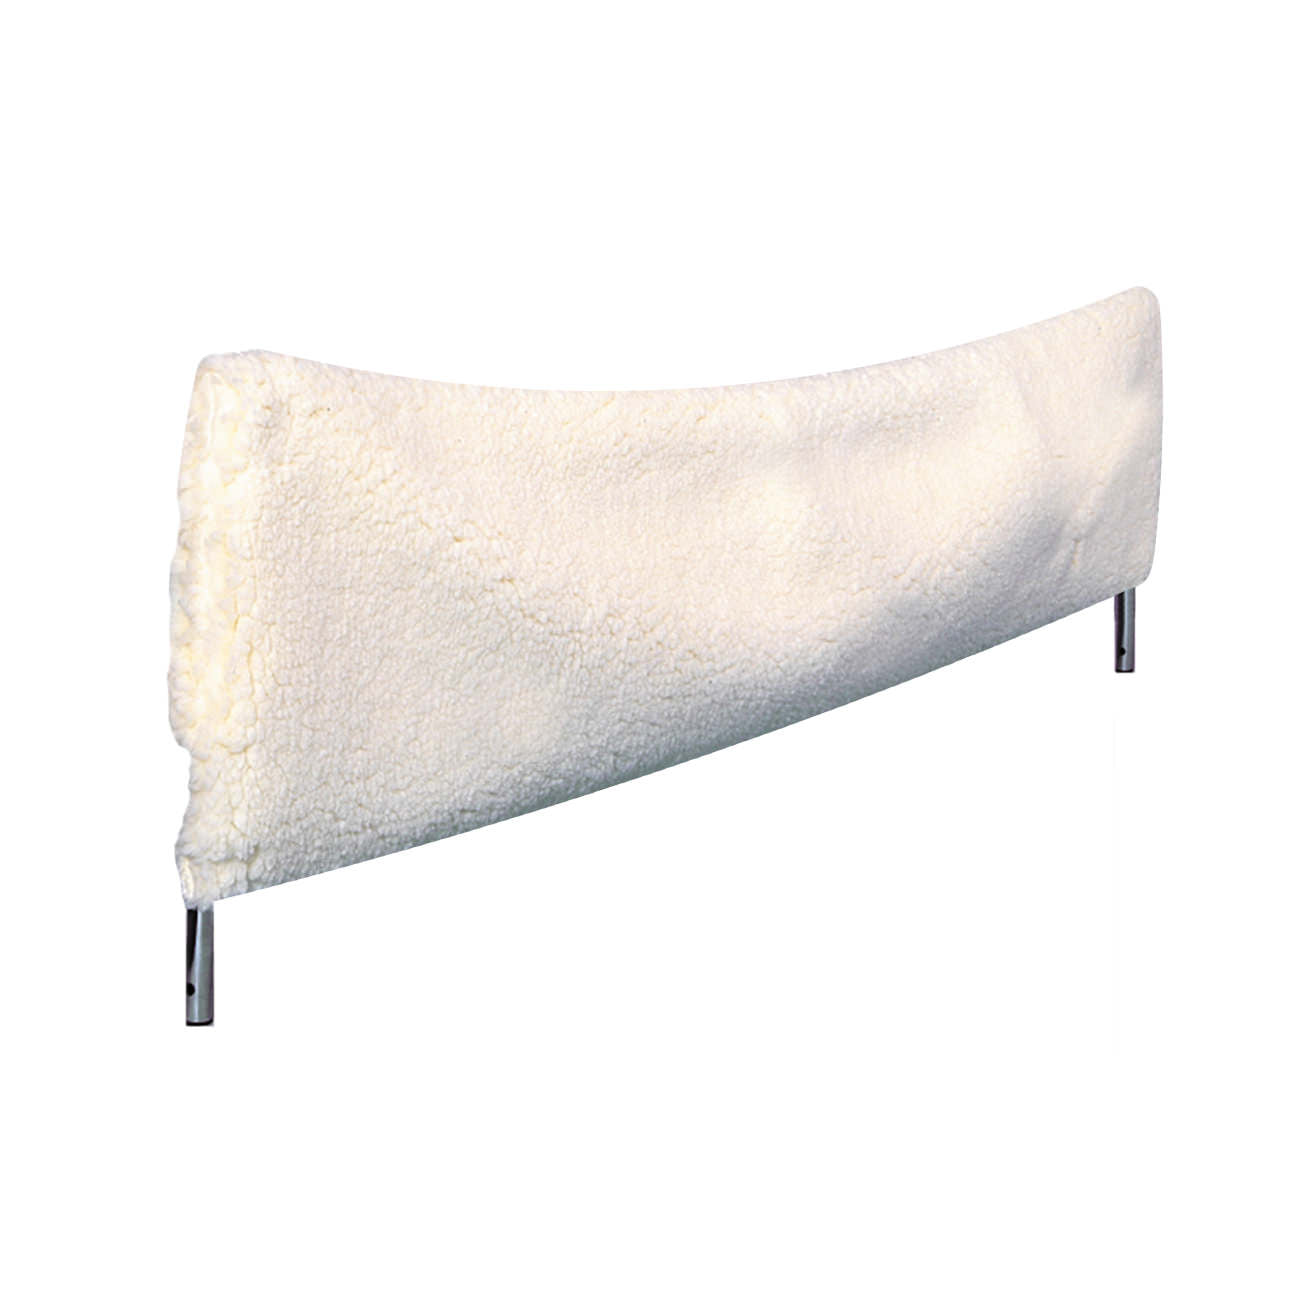 Essential Medical Sheepette Bed Rail Covers (1 Pair)